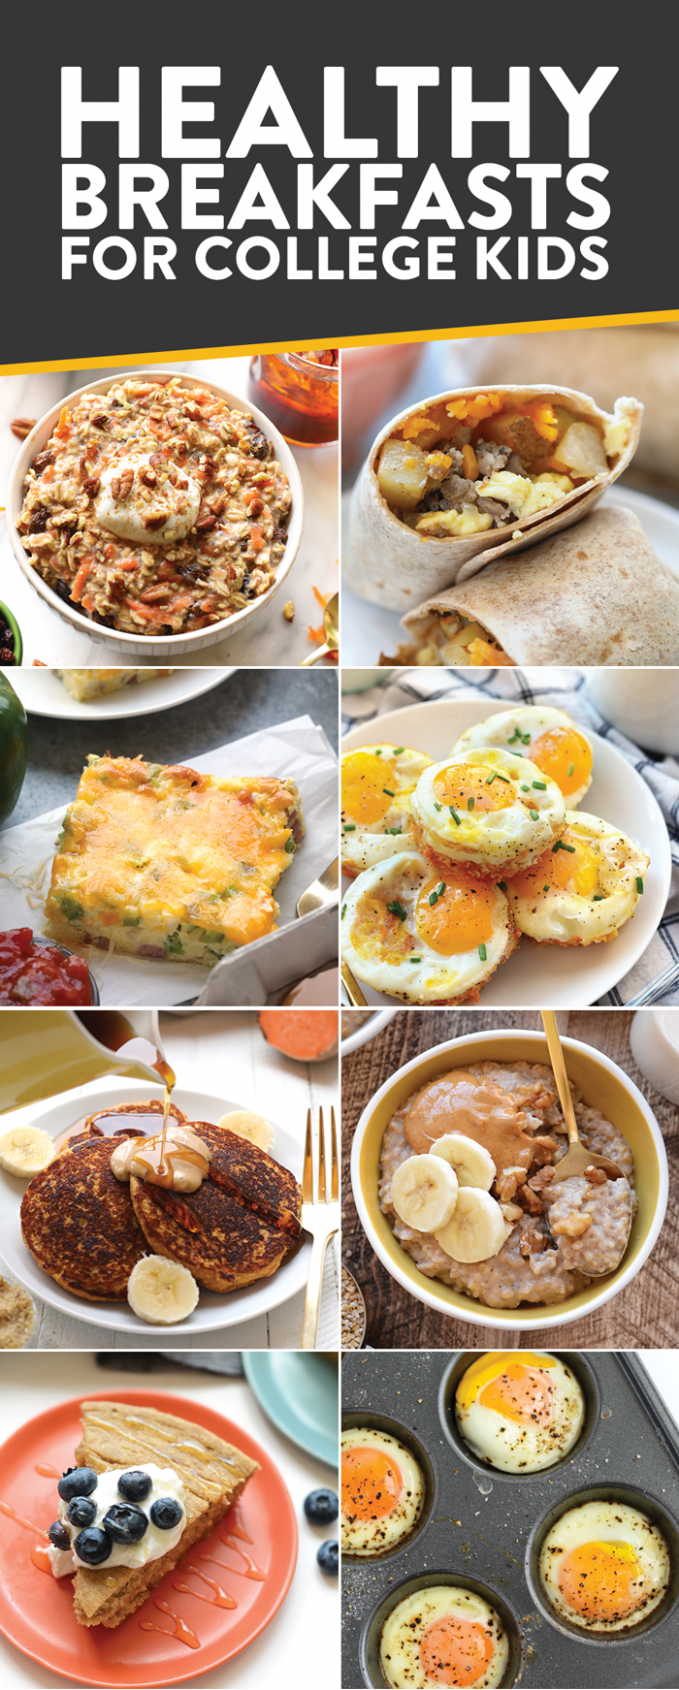 Best Healthy College Meals (budget-friendly) - Fit Foodie Finds - Simple Recipes For Students